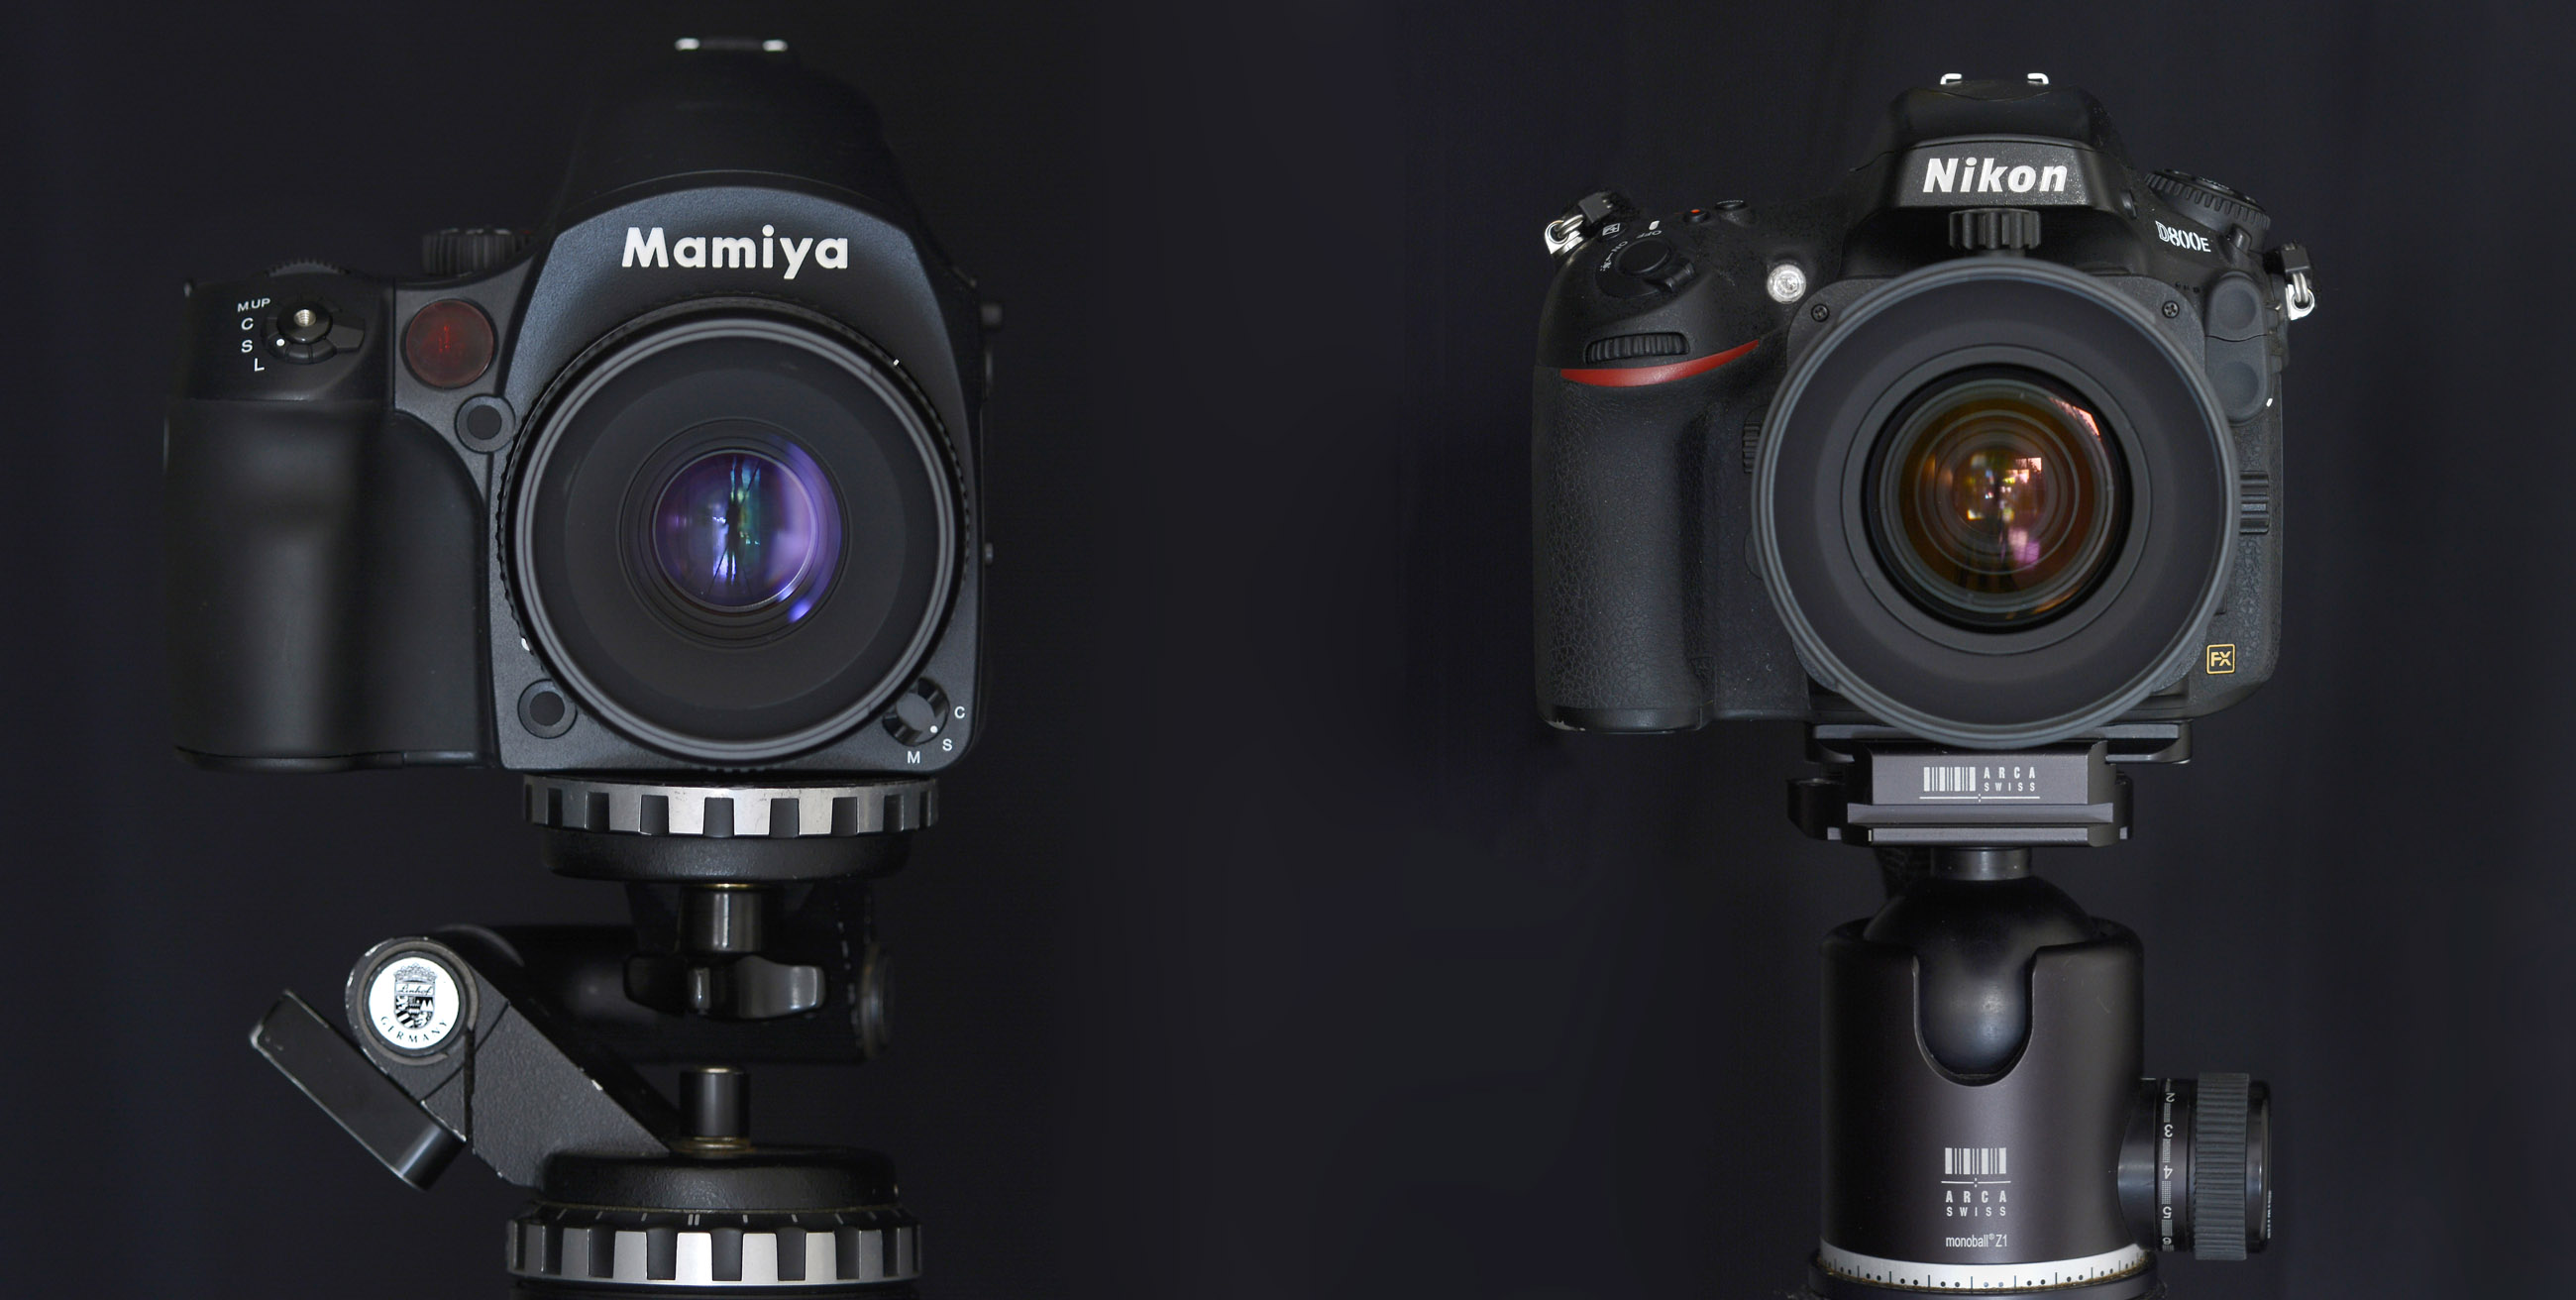 Camera Full Frame Sensor Dslr Cameras full frame dslr versus medium format nikon d800e and the mamiya nikon